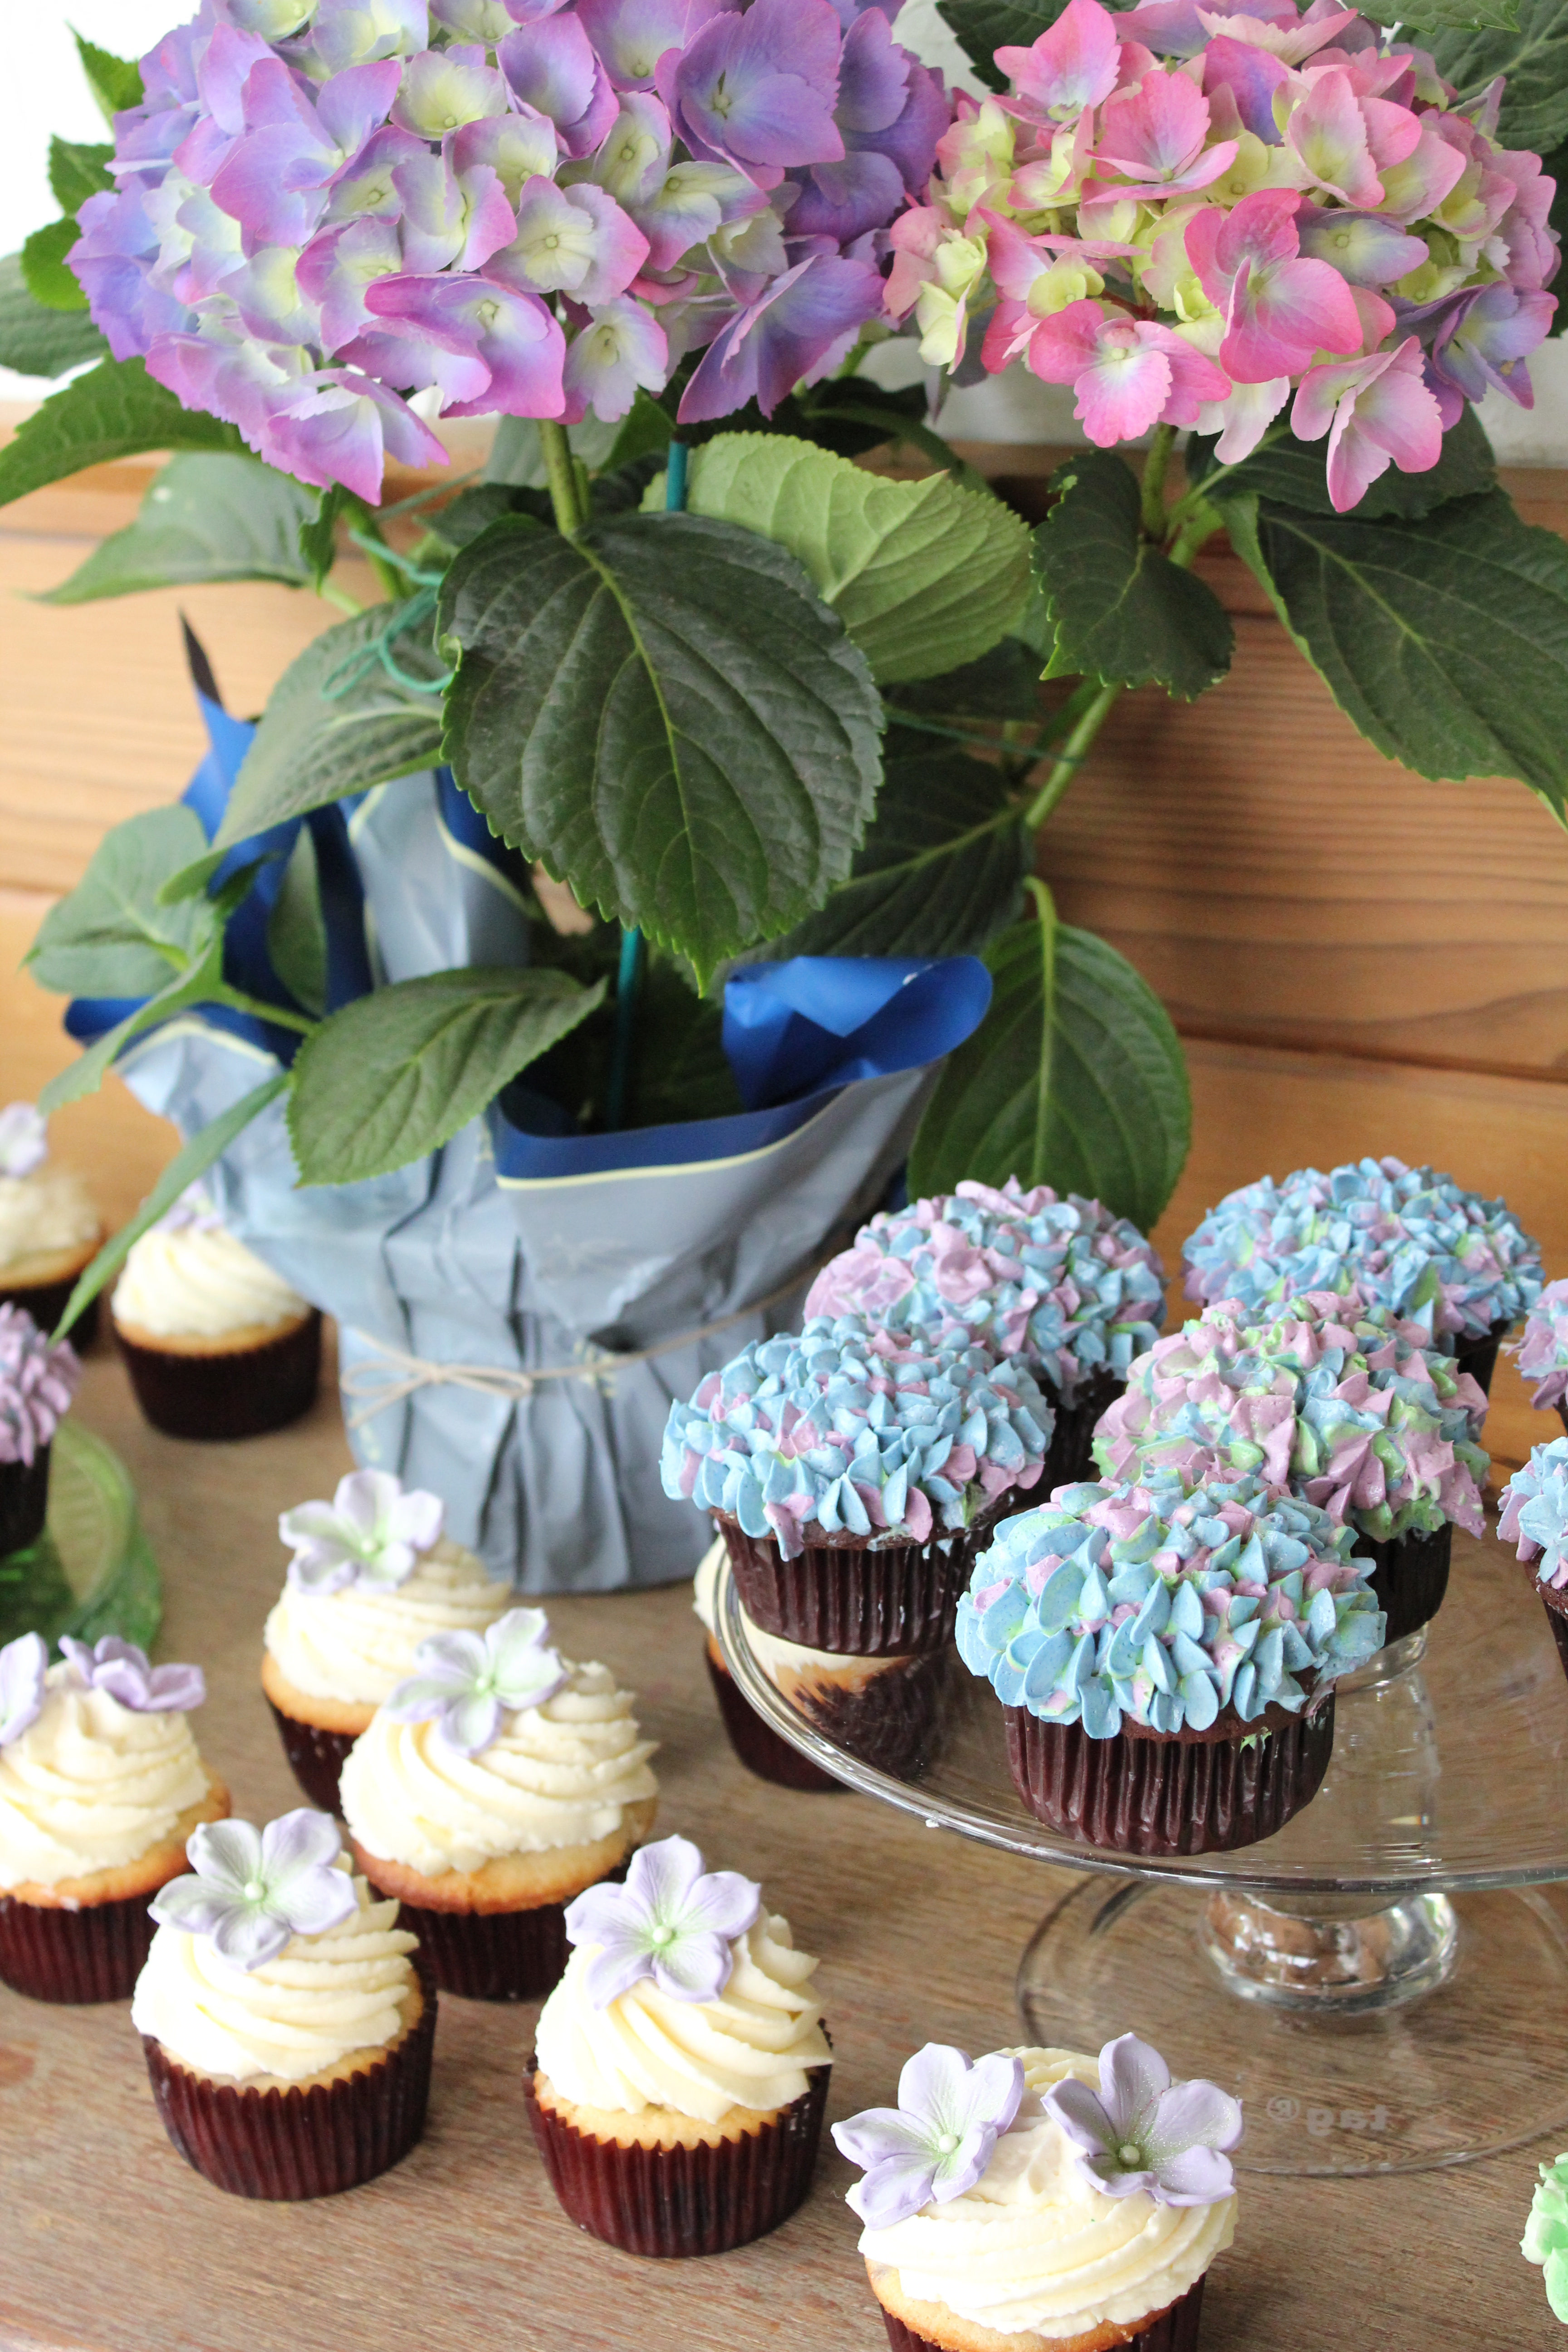 Cupcake Decorating Ideas For Wedding Showers : Bridal Shower Cupcakes There Goes the Cupcake...